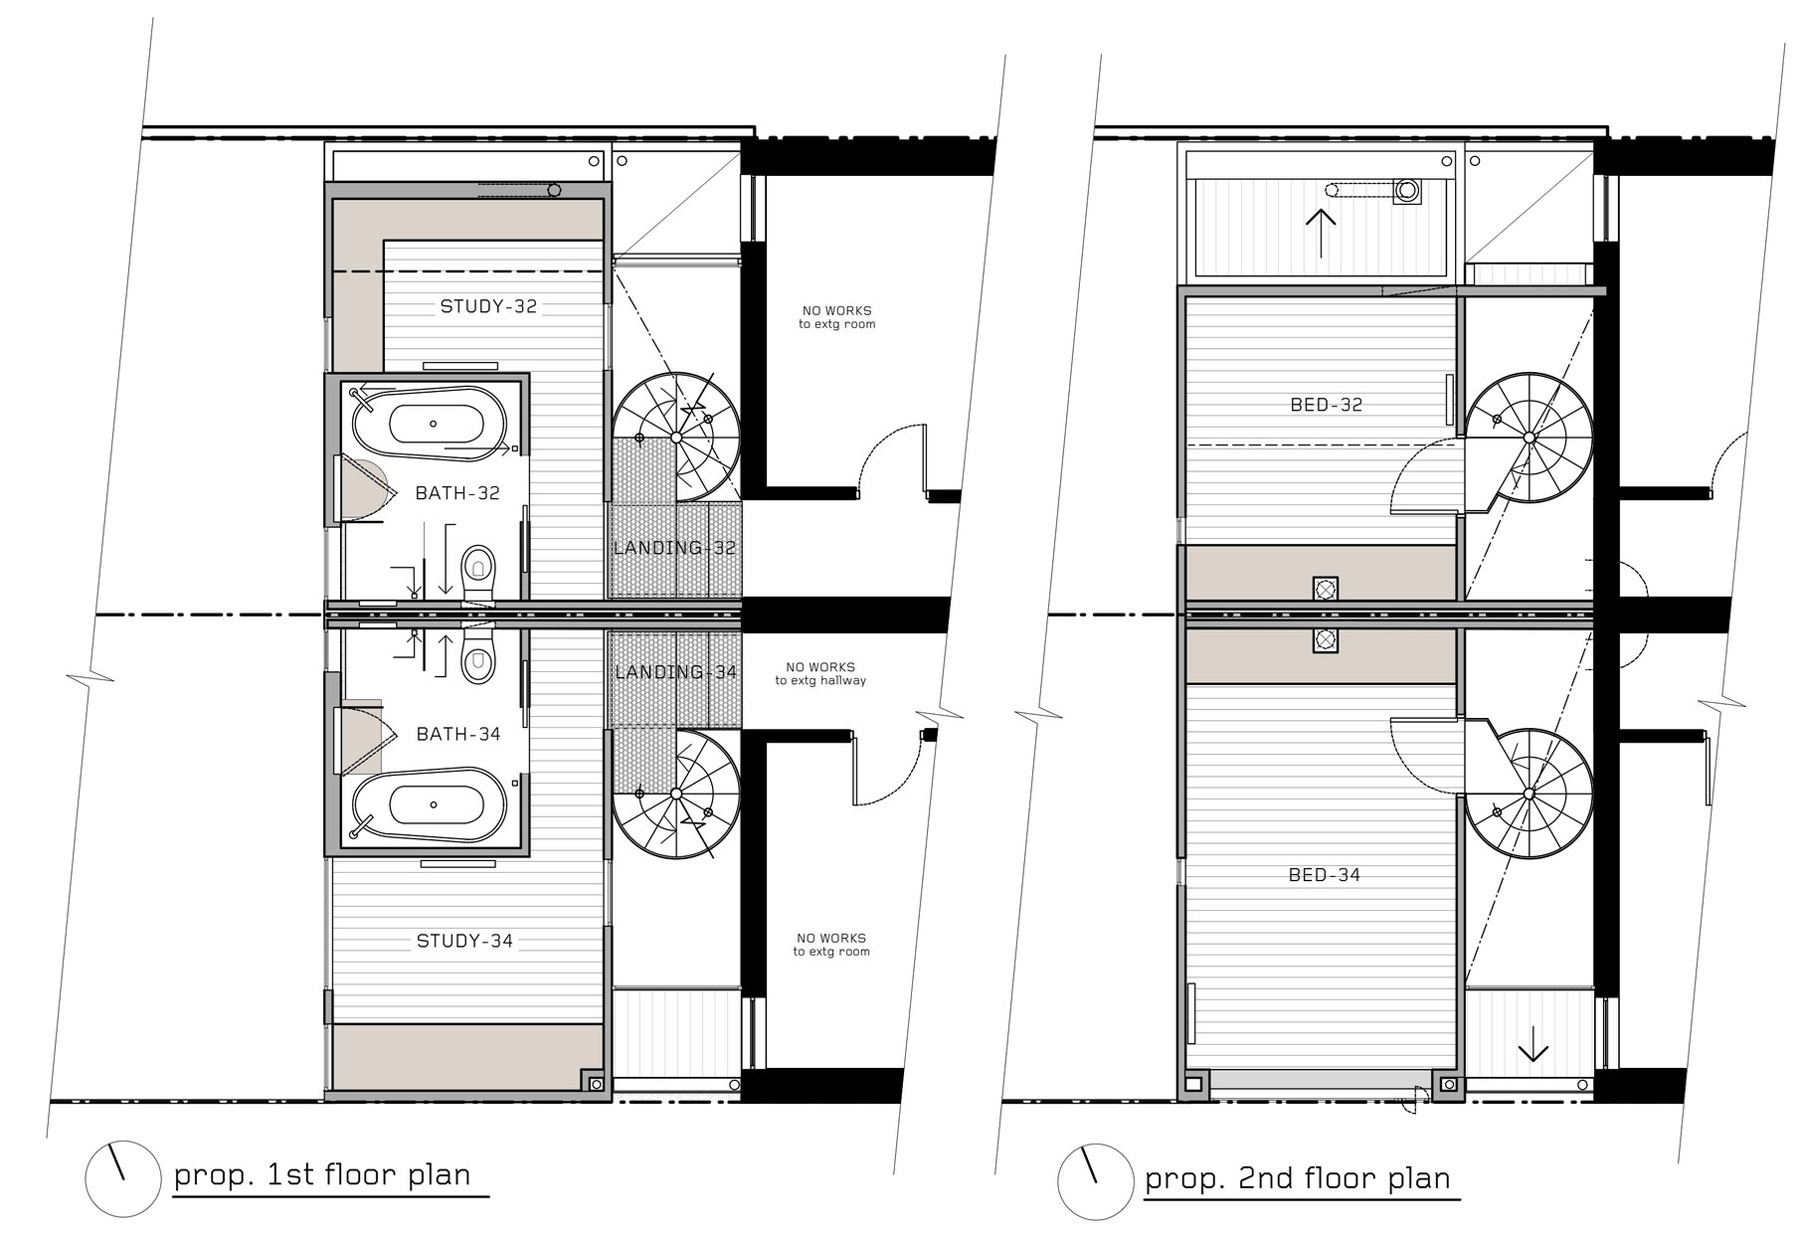 First & Second Floor Plan, Two-Home Extension Within a Single Building in Richmond, Australia